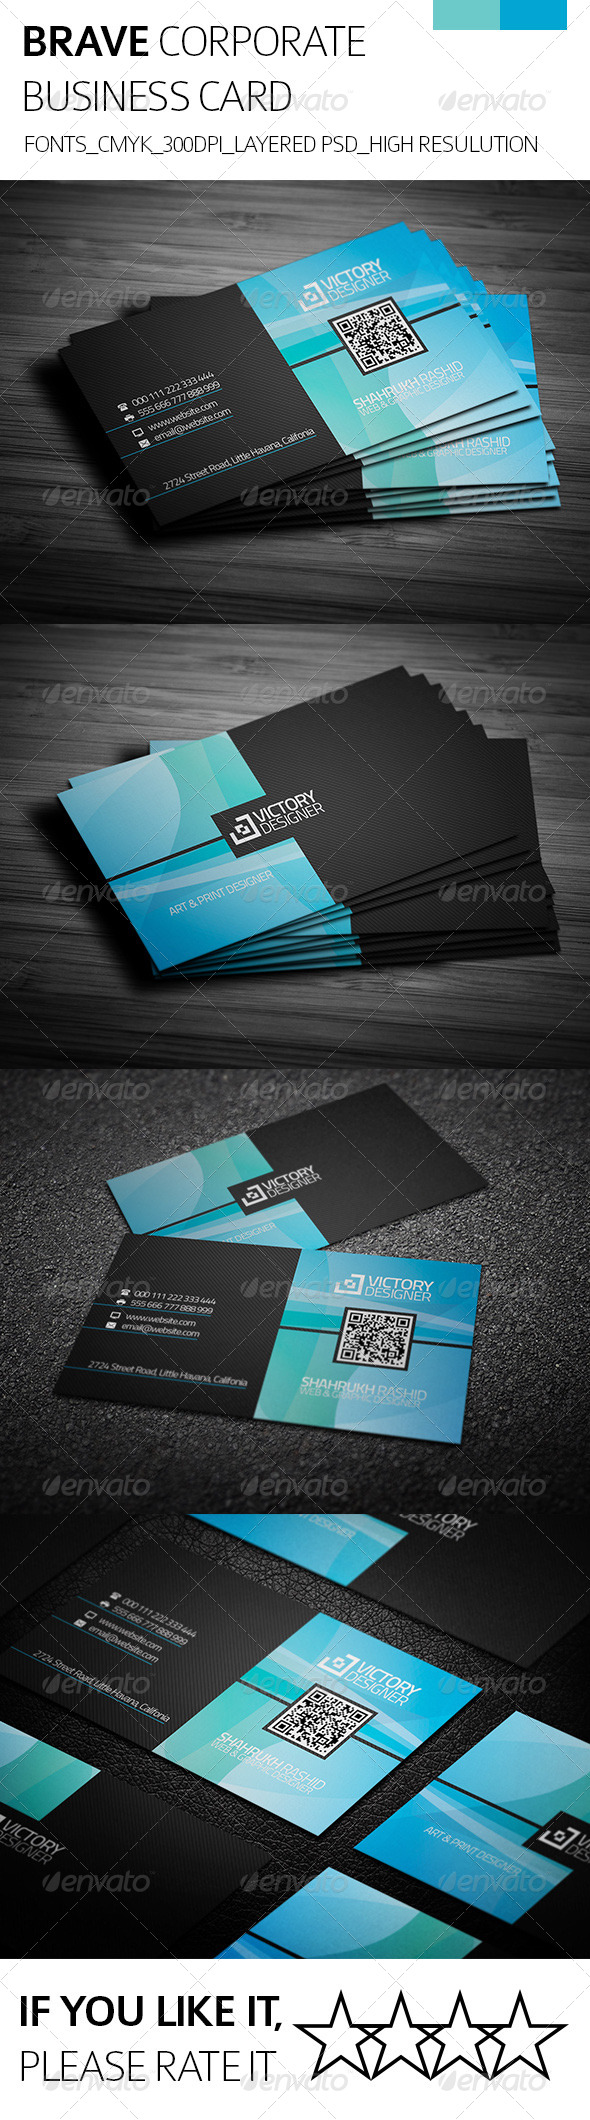 Brave & Corporate Business Card - Corporate Business Cards